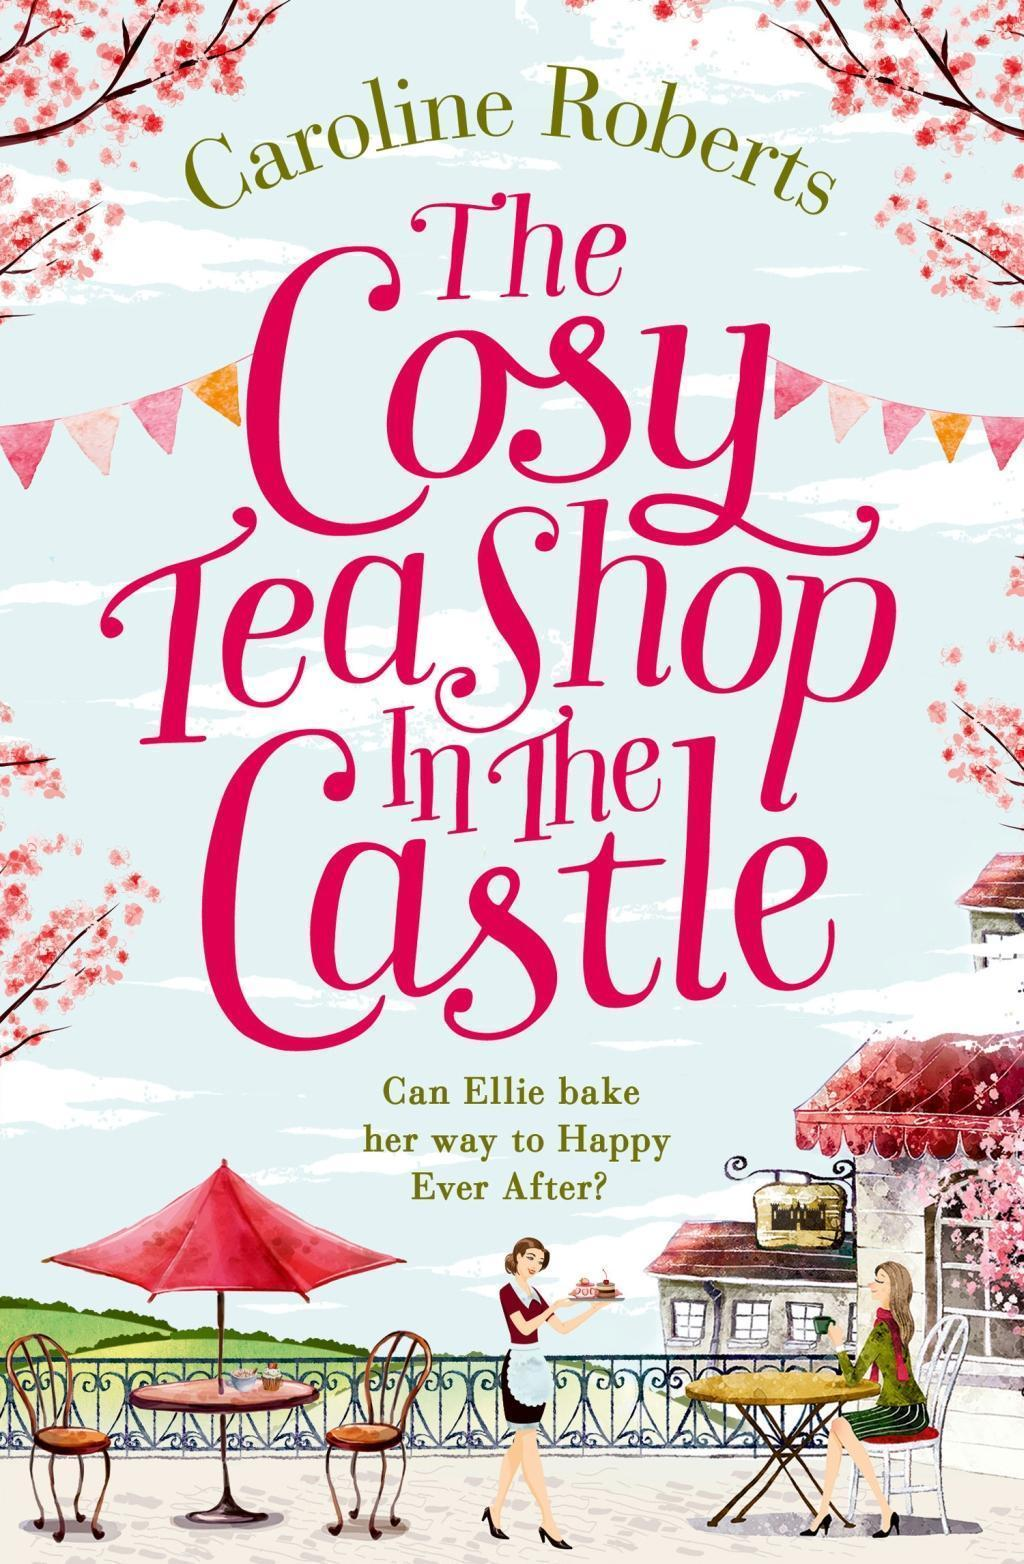 The Cosy Teashop in the Castle: Cakes and romance, a summer must-read you'll fall in love with